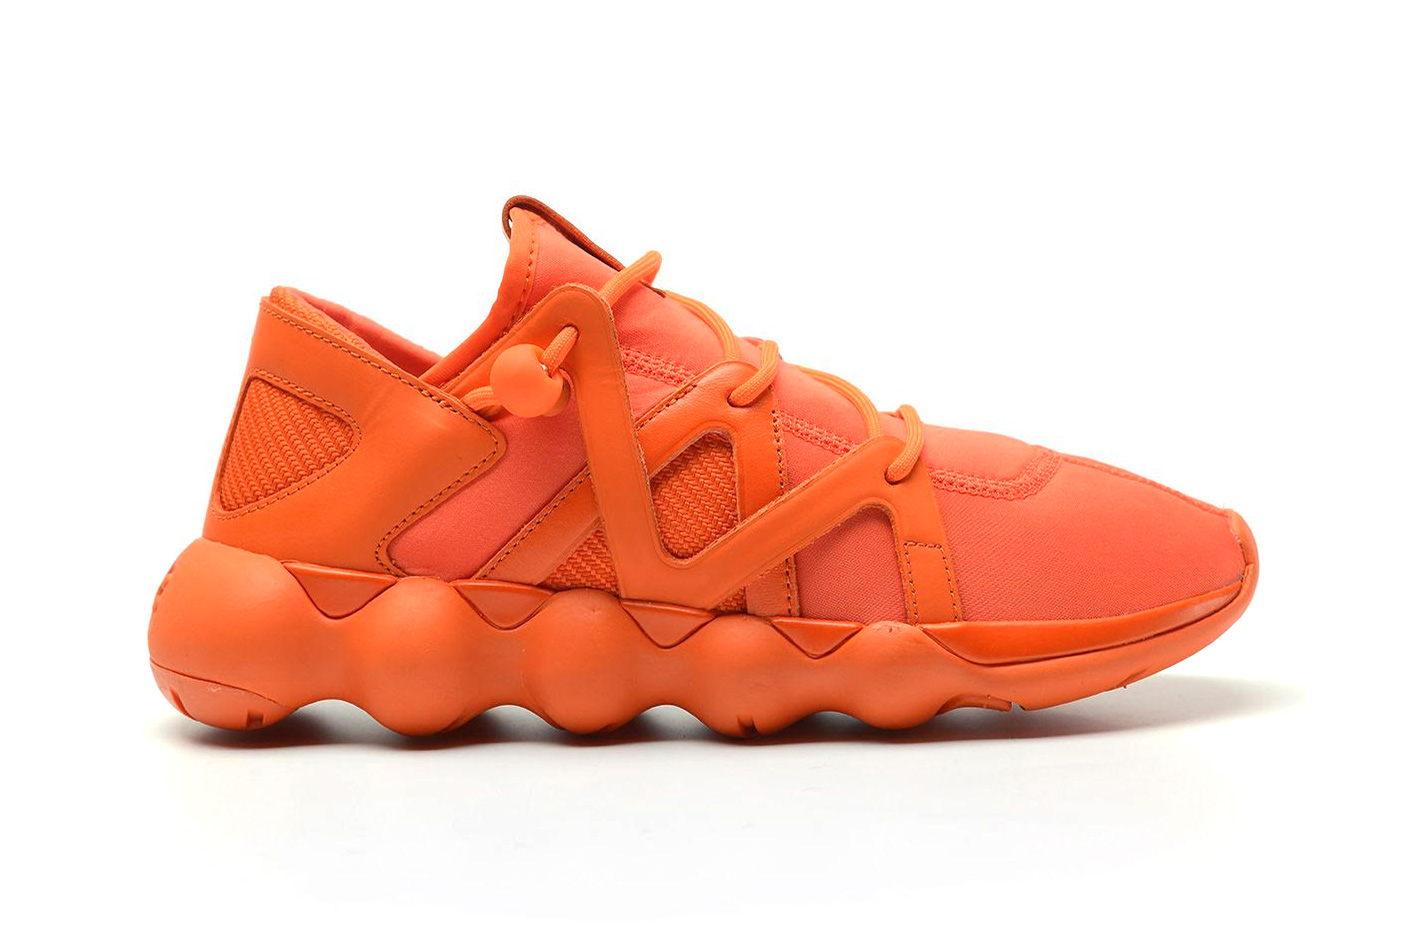 The Y-3 Kyujo Low Gets Doused in Orange